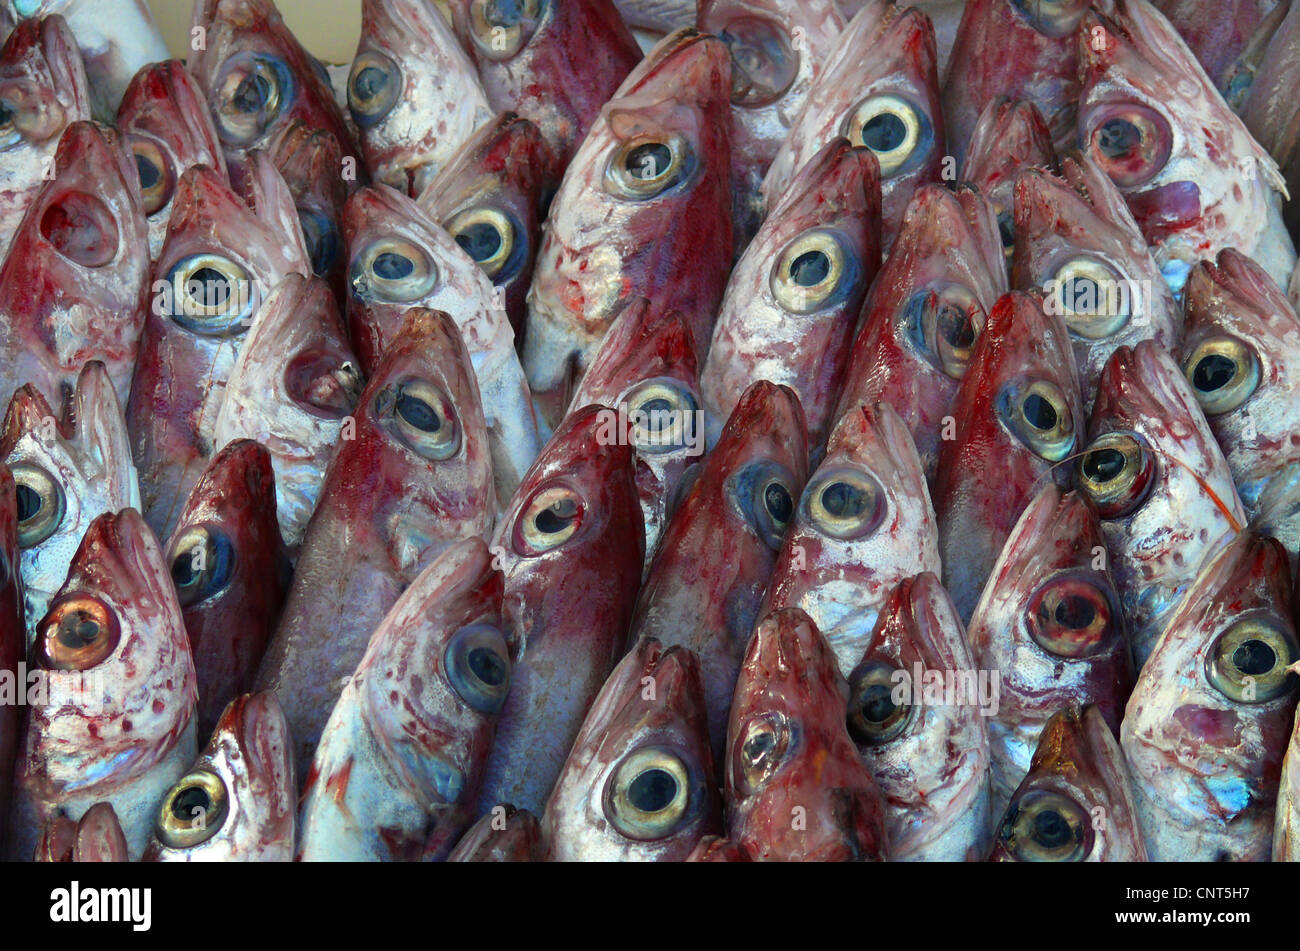 red edible fishes on a market, Spain, Balearen, Majorca, Alcudia - Stock Image